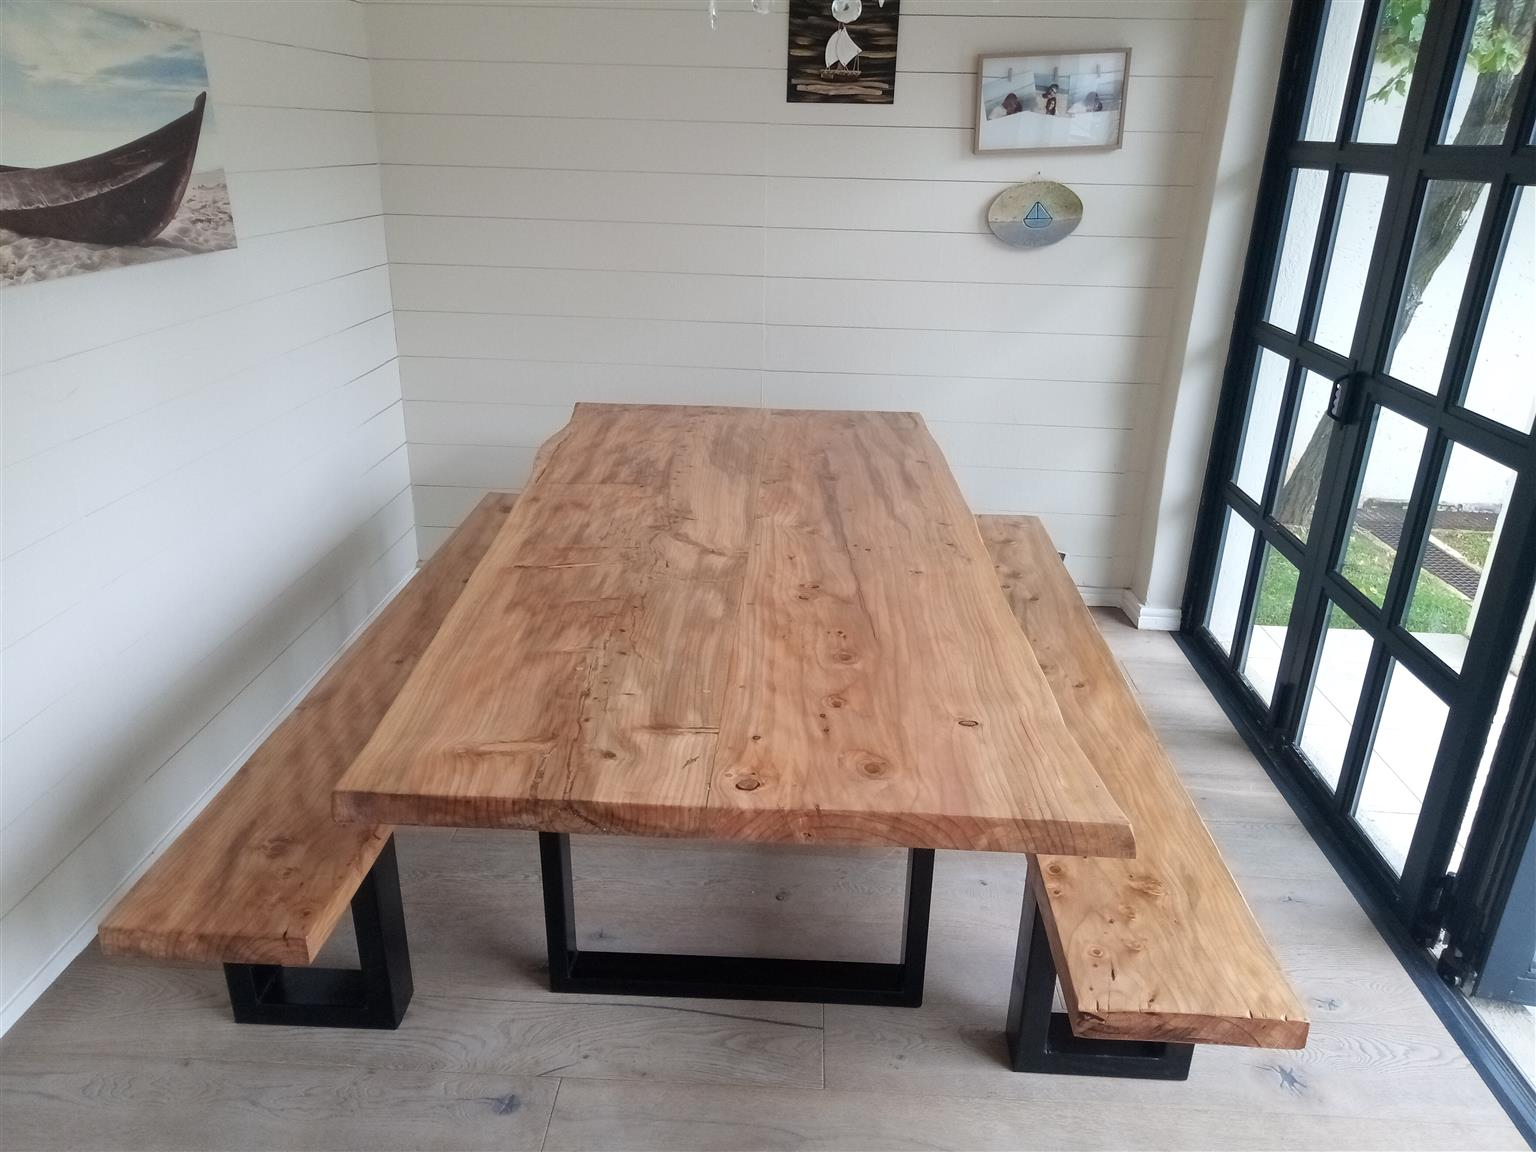 Live Edge Tables, Benches and Counter Tops